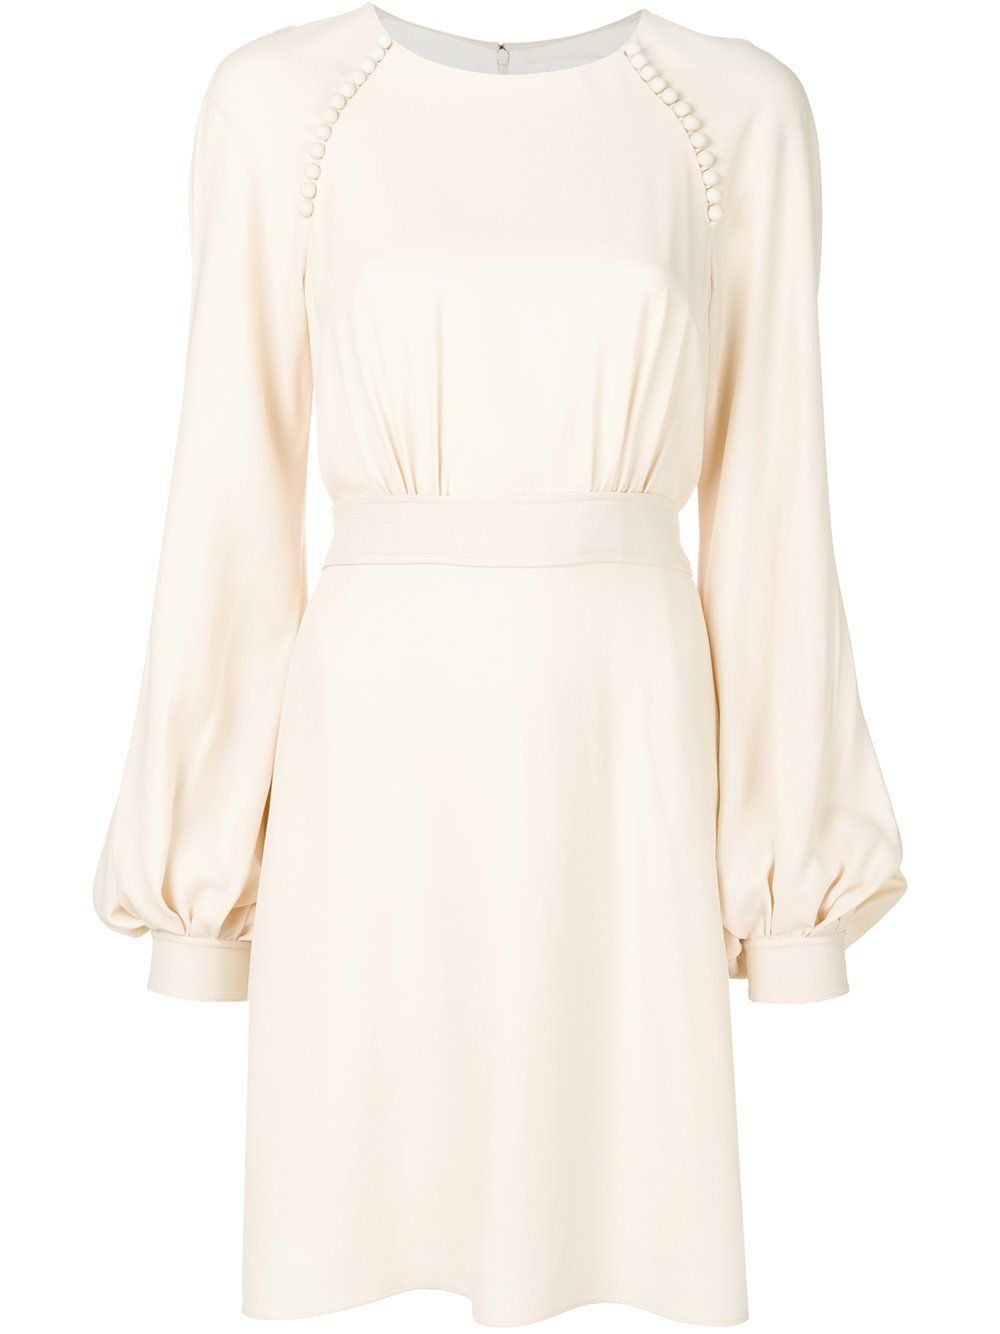 Chloé long-sleeved flared dress Cheap Online Store Manchester Hot Visit Online Cool Perfect Sale Online FUsqe